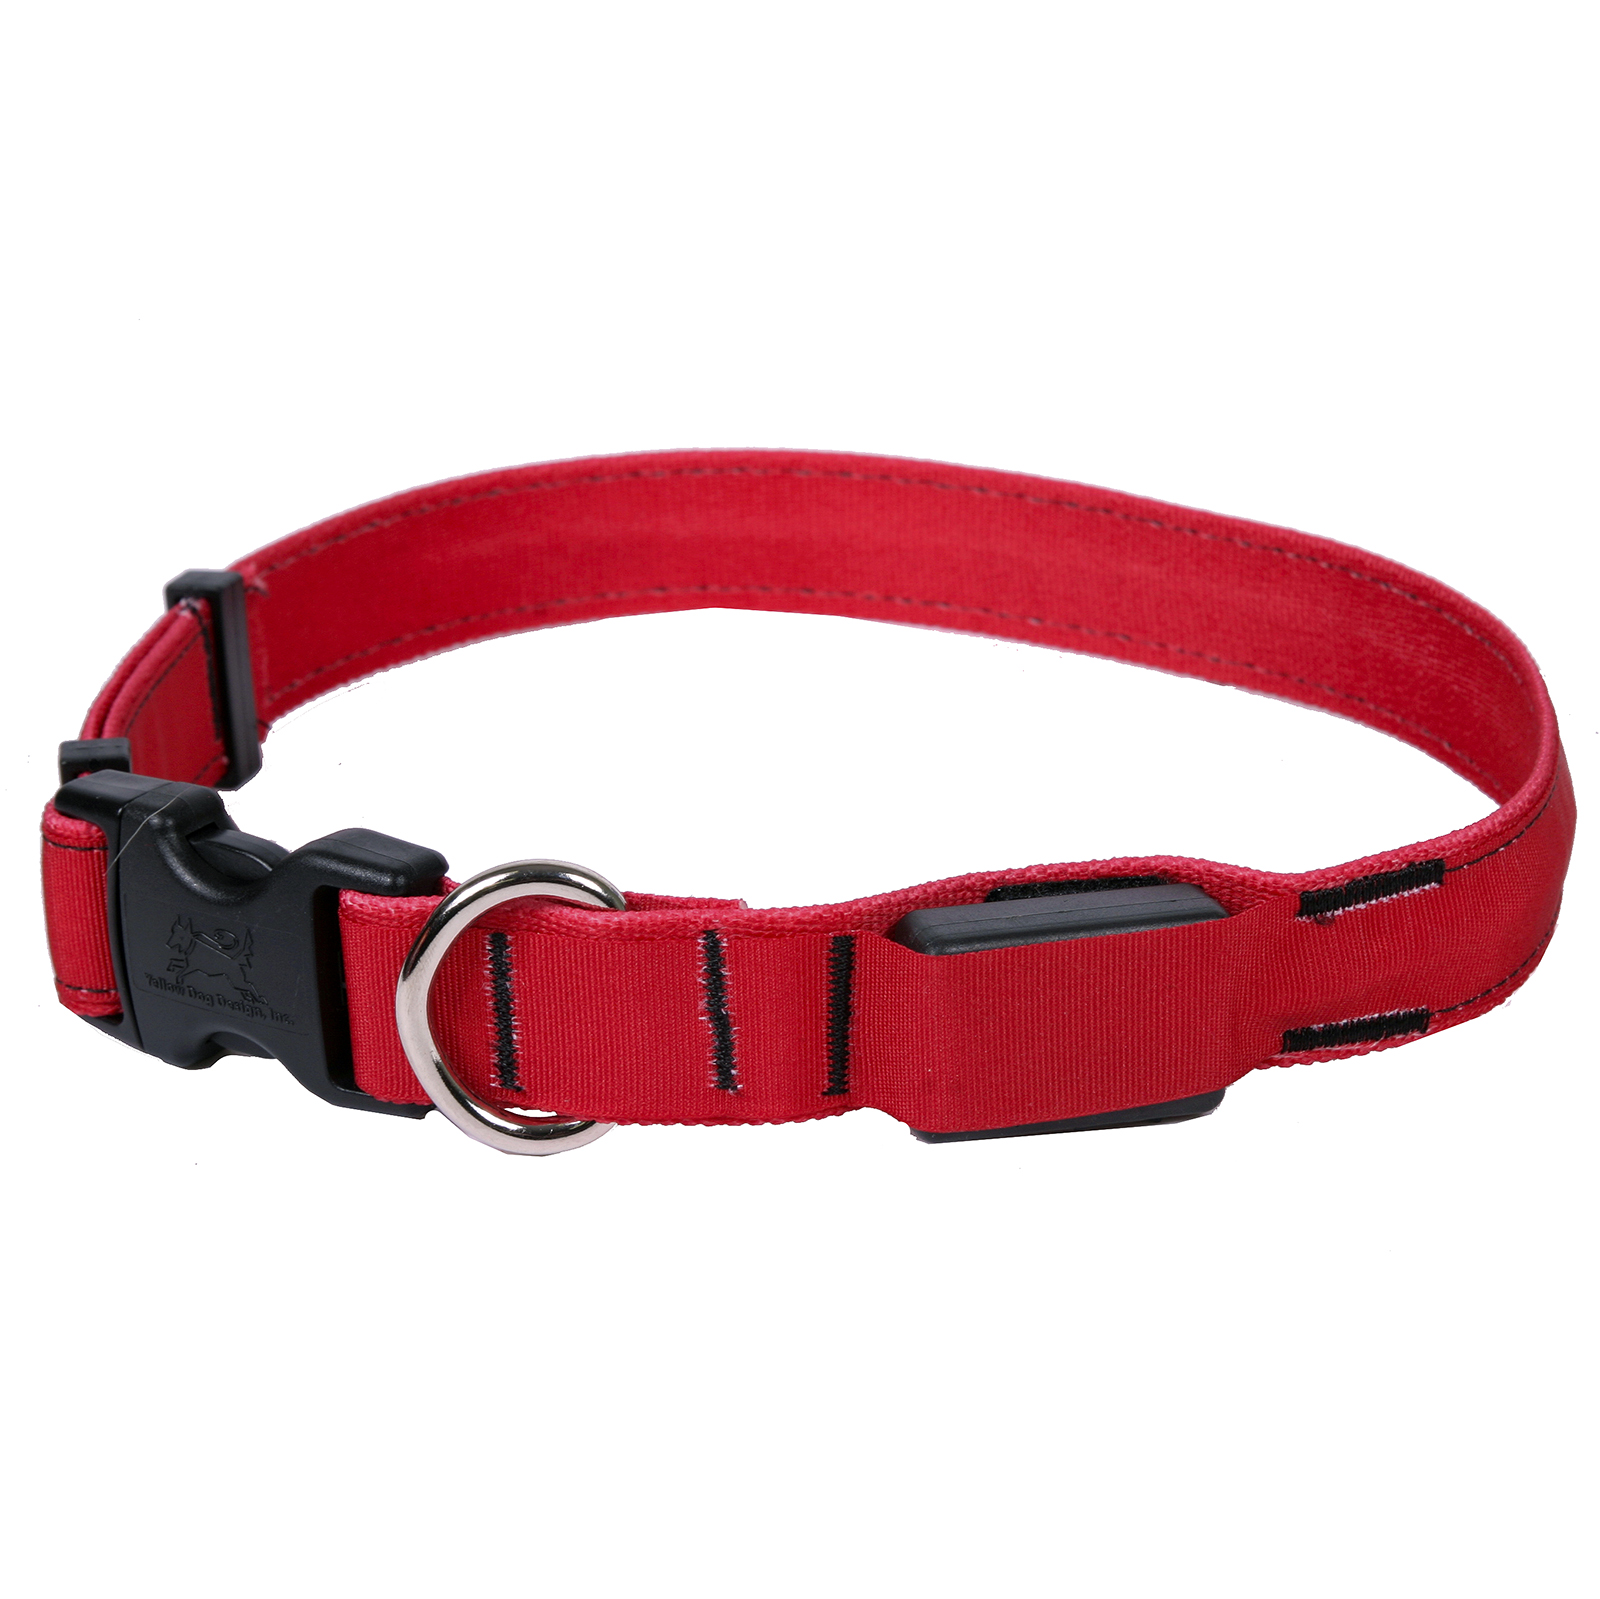 Solid Red ORION LED Dog Collar